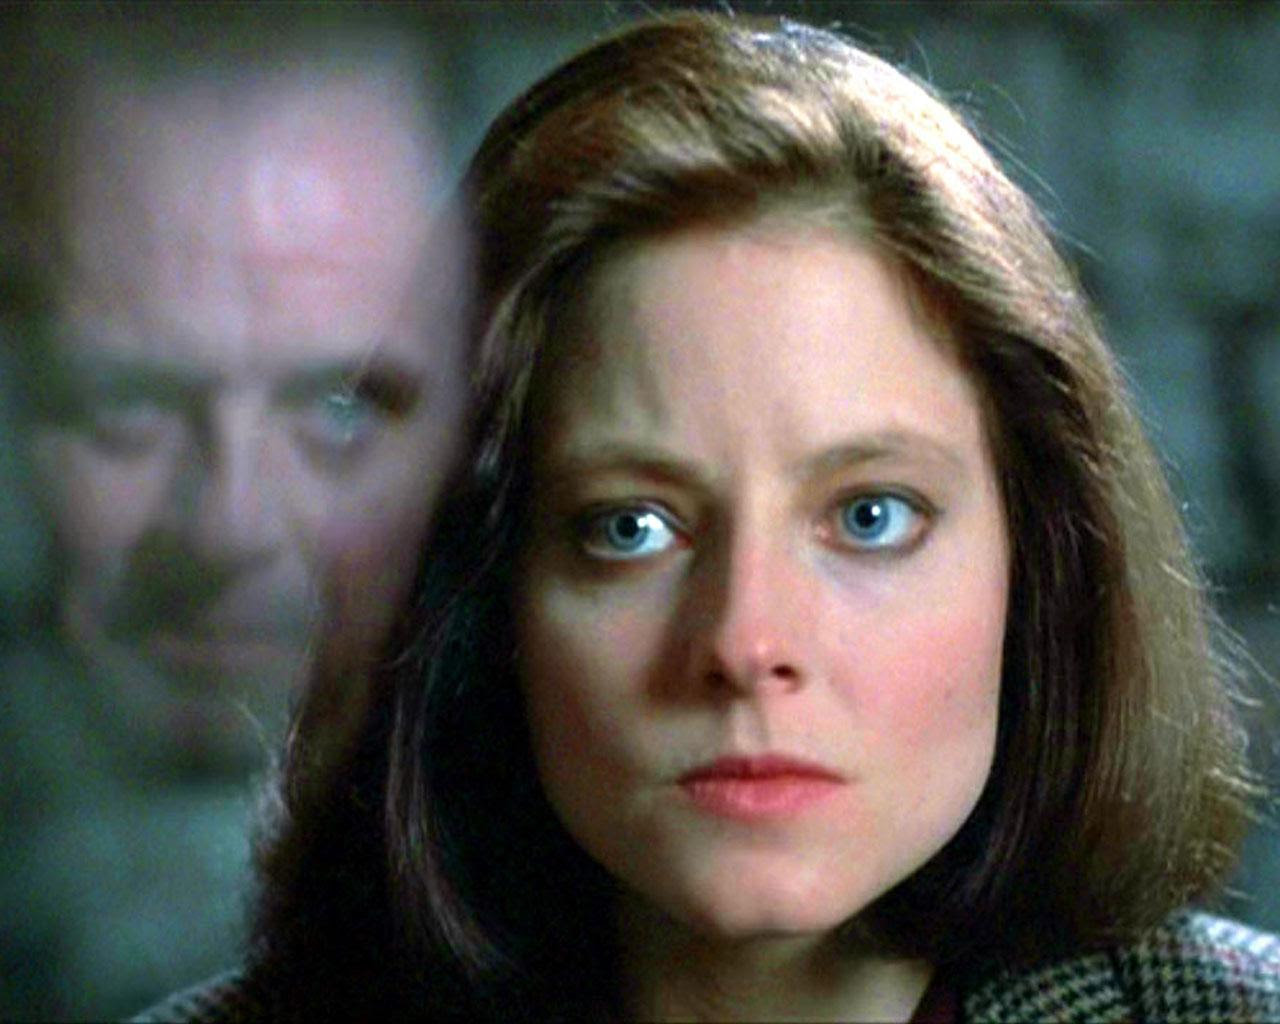 Best Movie The Silence Of The Lambs 1280x1024 Wallpaper 2